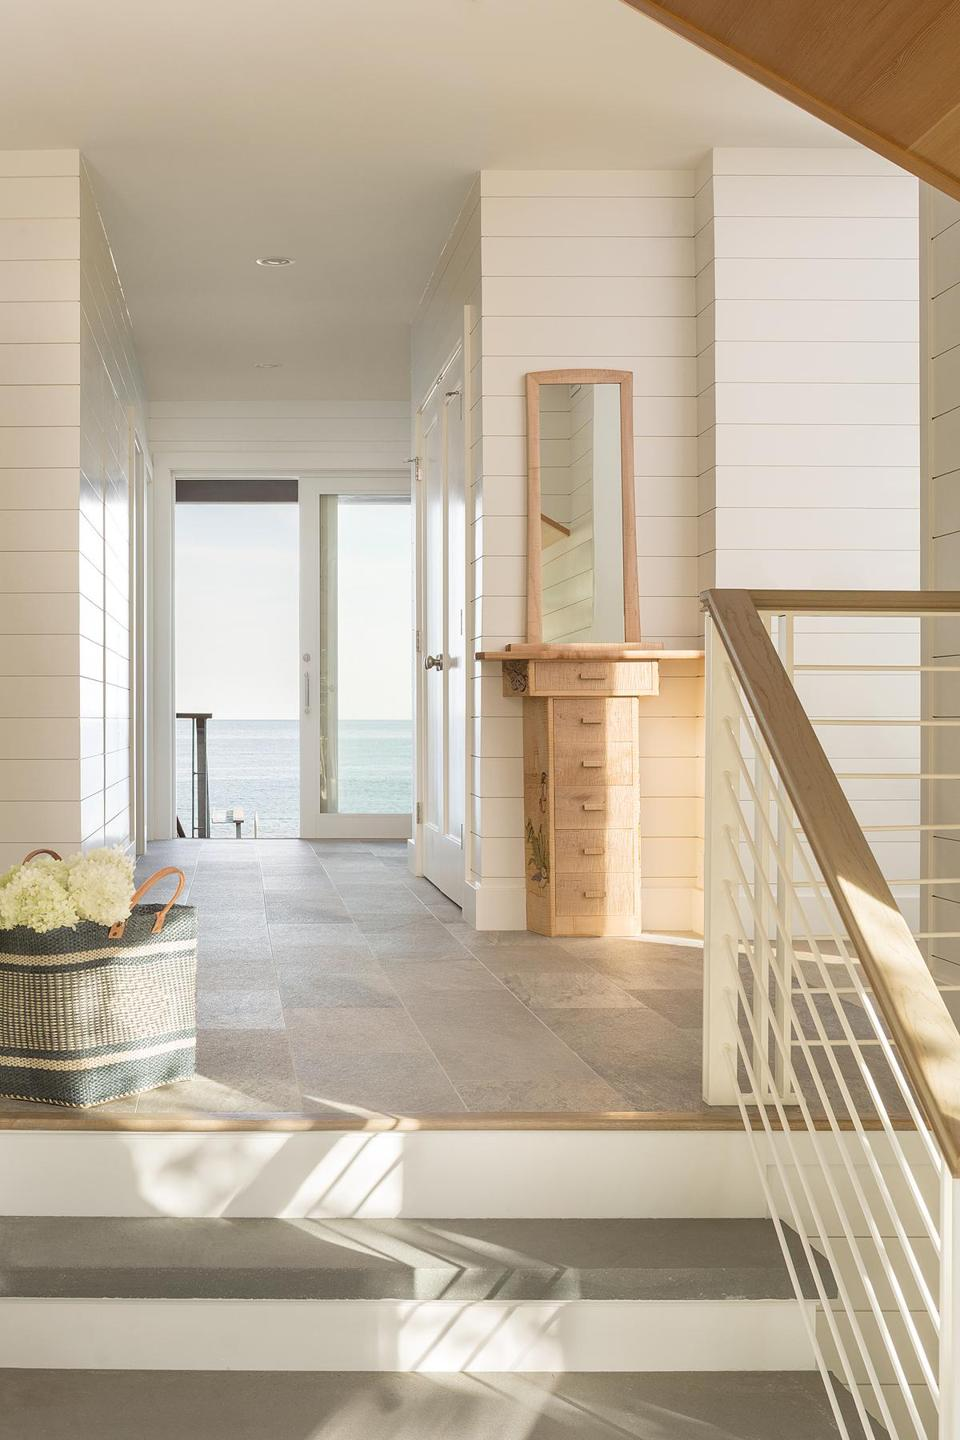 "Walter Zanger ""Walks"" tiles in gray textured porcelain connect the front entry to the back porch. The material helps keep water and sand from straying onto the wood-plank floors in the main living space."